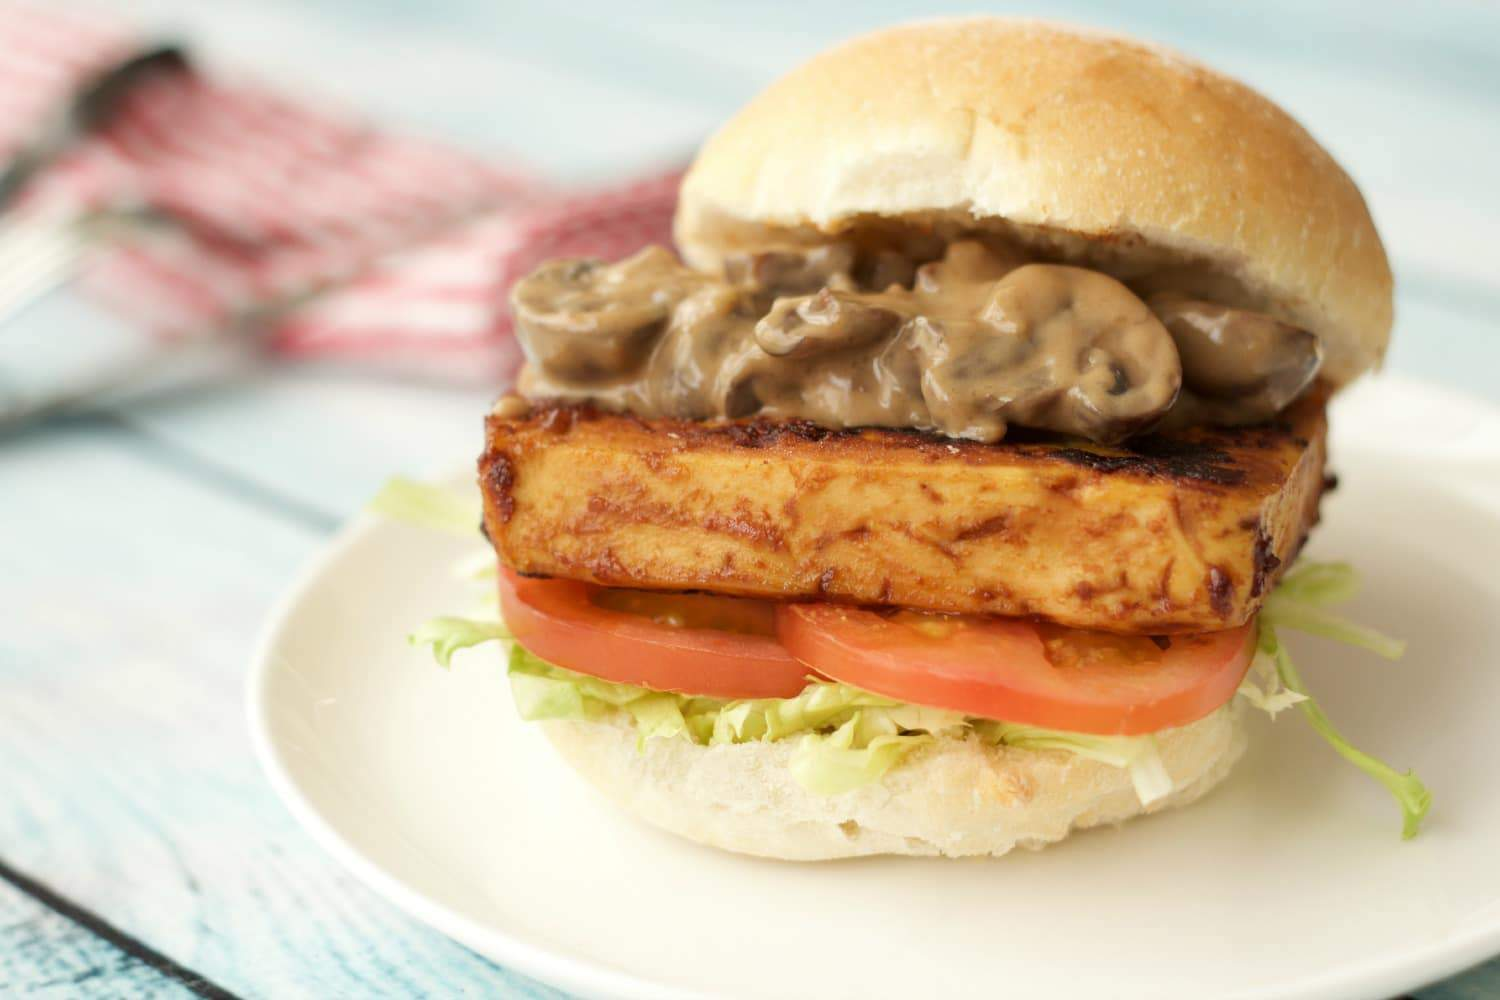 Tofu Burger with mushroom sauce on a white plate with a red and white napkin in the background.